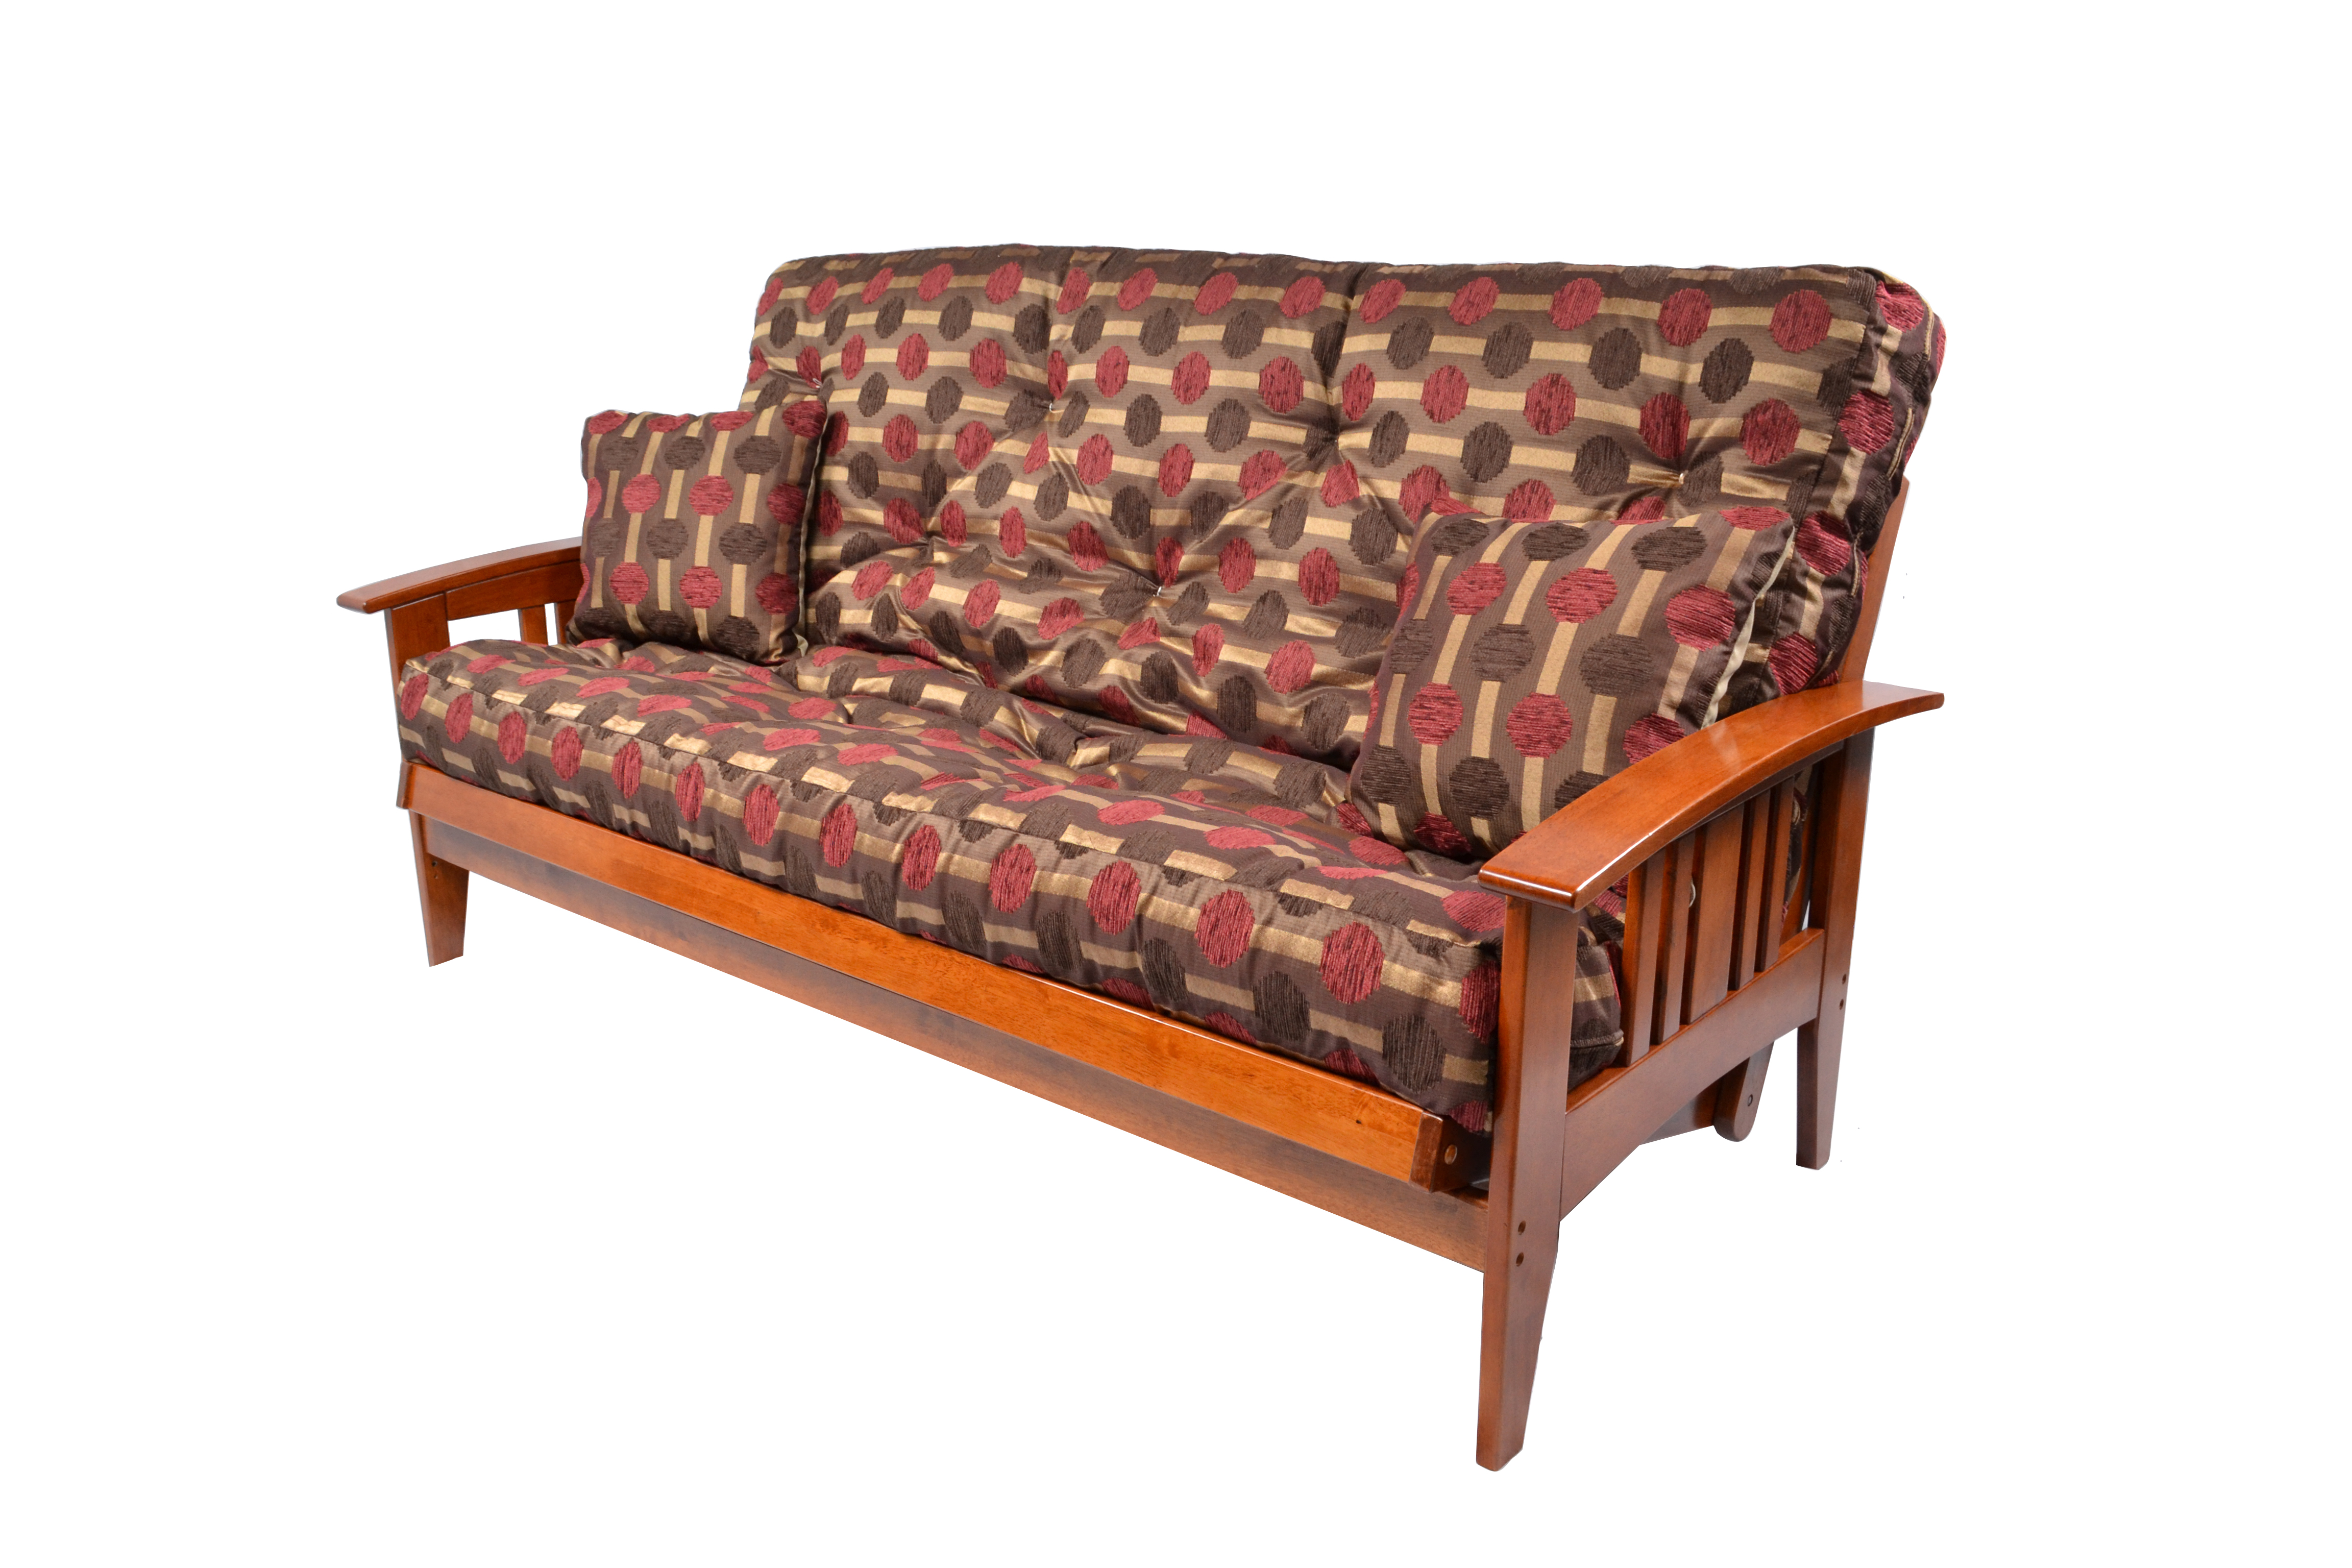 Man Cave Futon : Three options for creating a man cave in garage or